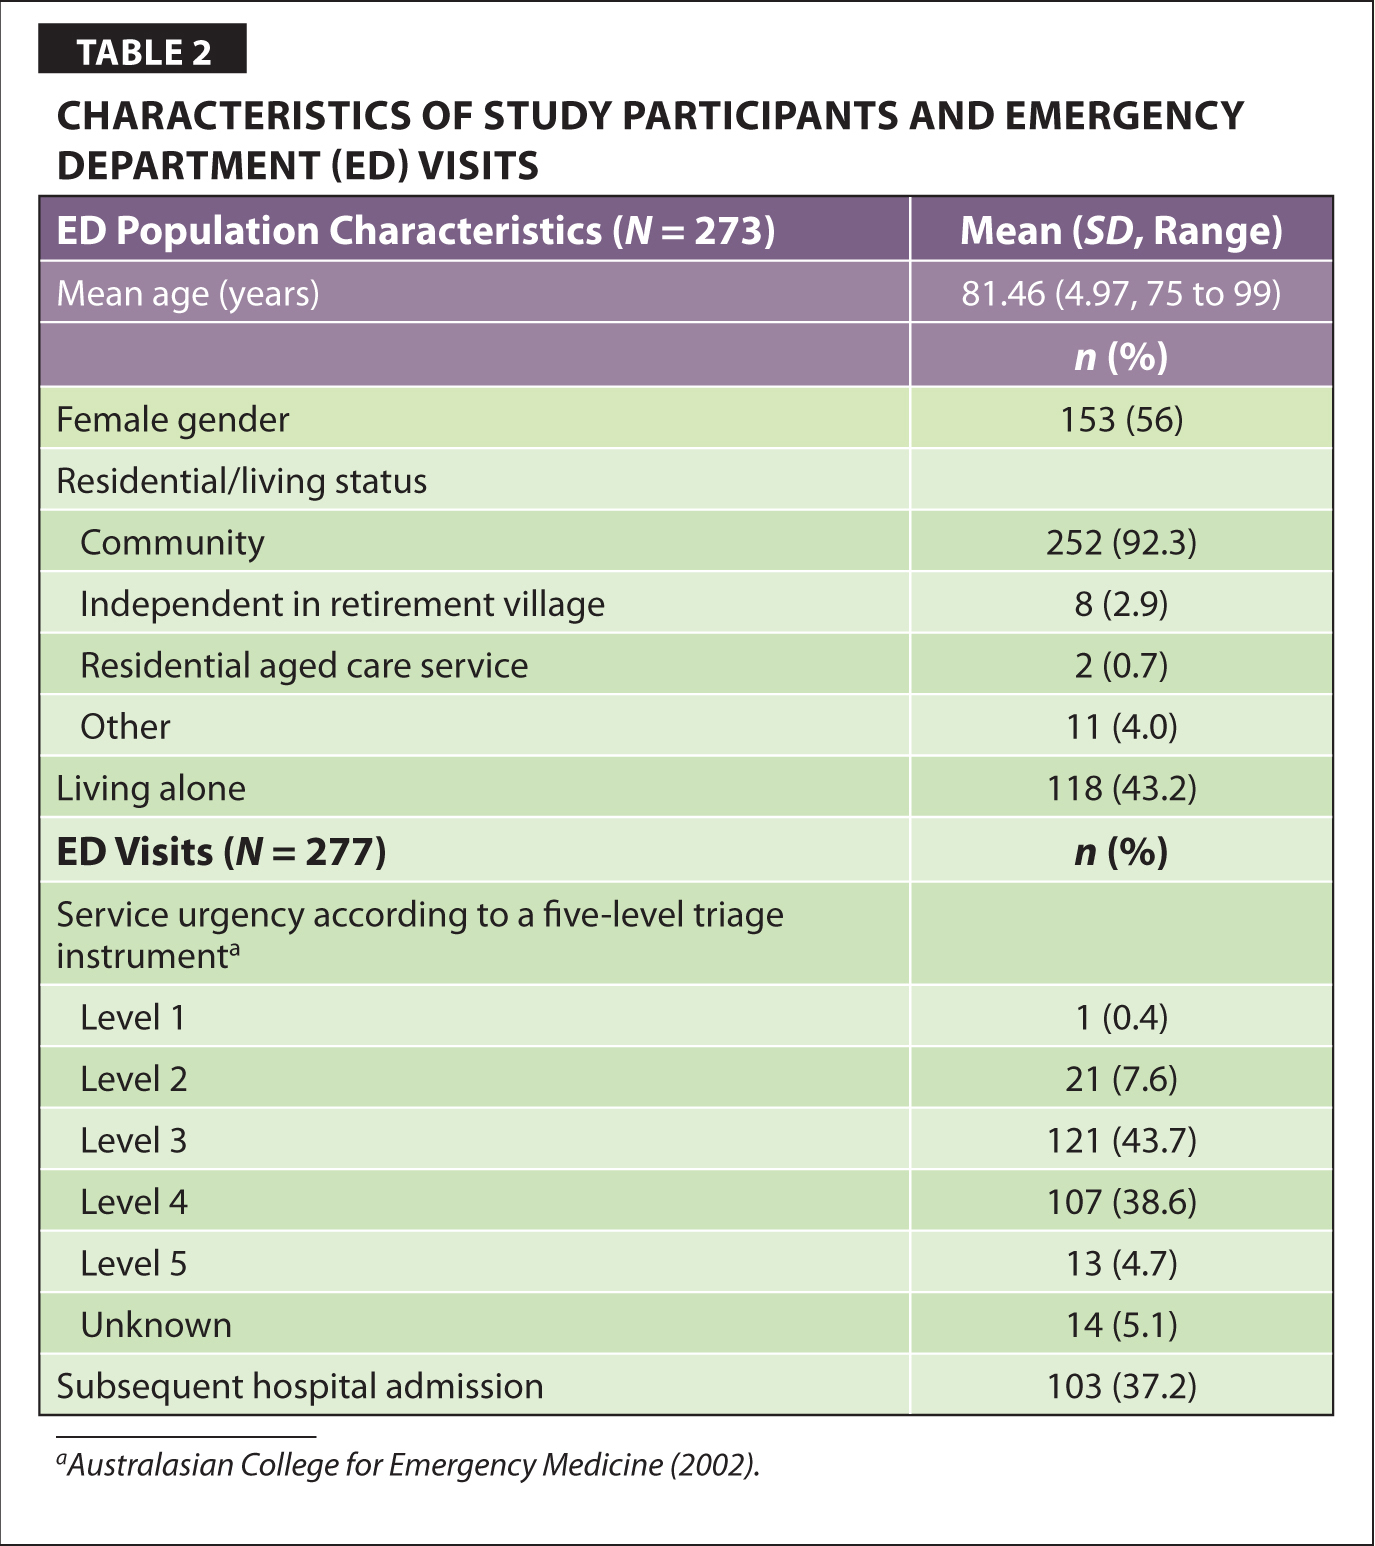 Characteristics of Study Participants and Emergency Department (ED) Visits